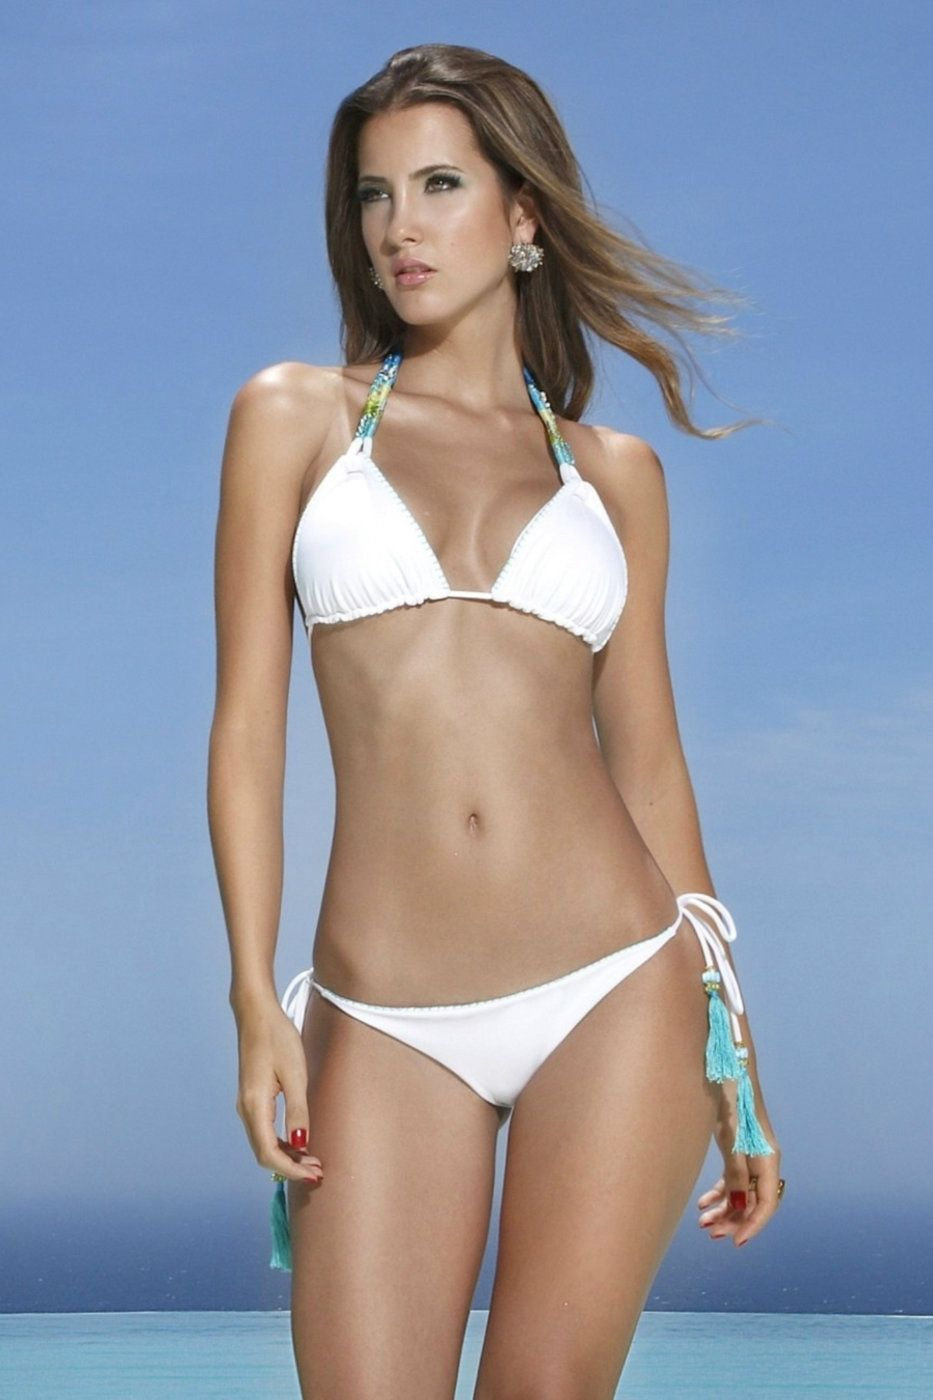 Hot Swimsuit Pics - Sexy Bikini Girls …. see our other tumbler...